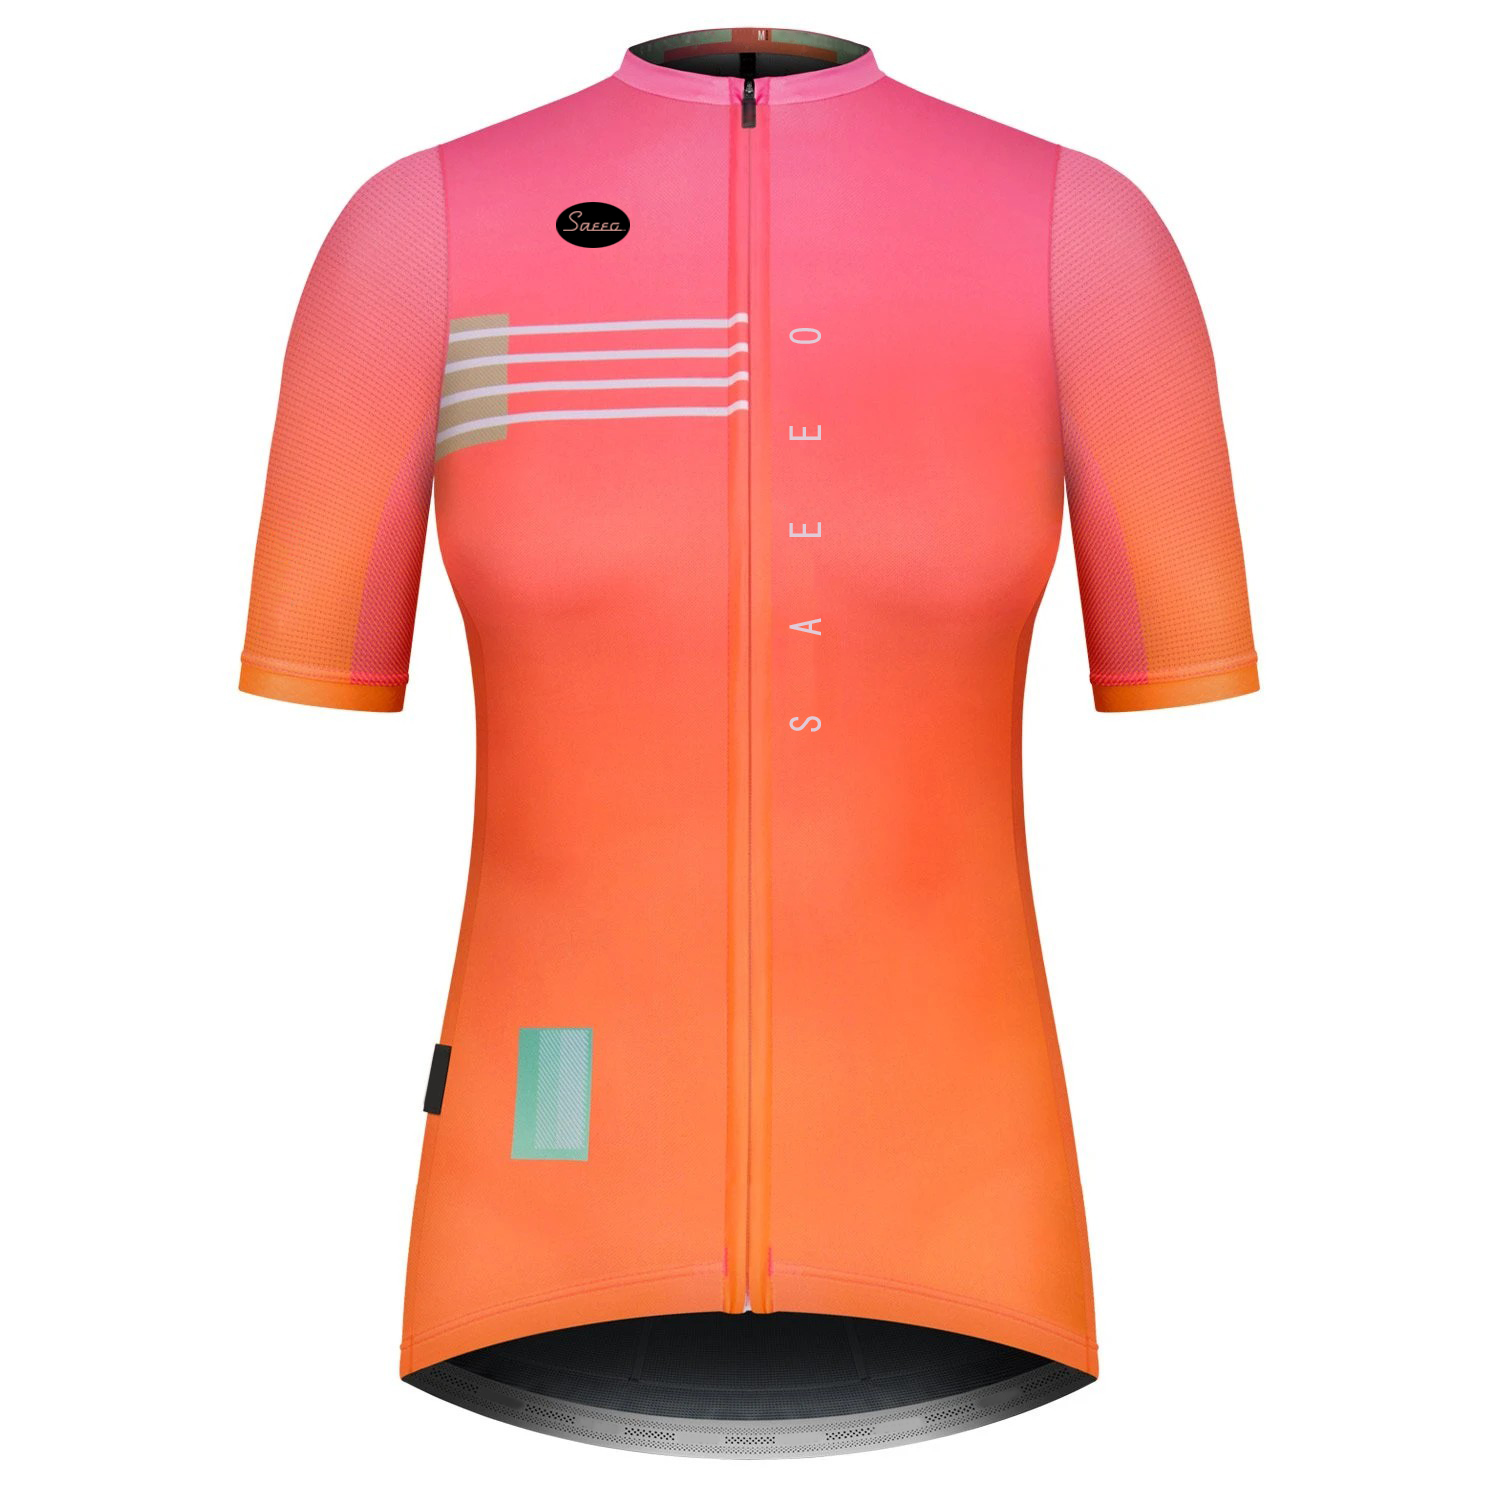 Raphaing Cycling Set Woman summer Bicycle Clothing Breathable Anti-UV Mountain Cycling Clothes Suits ropa ciclismo verano gobike